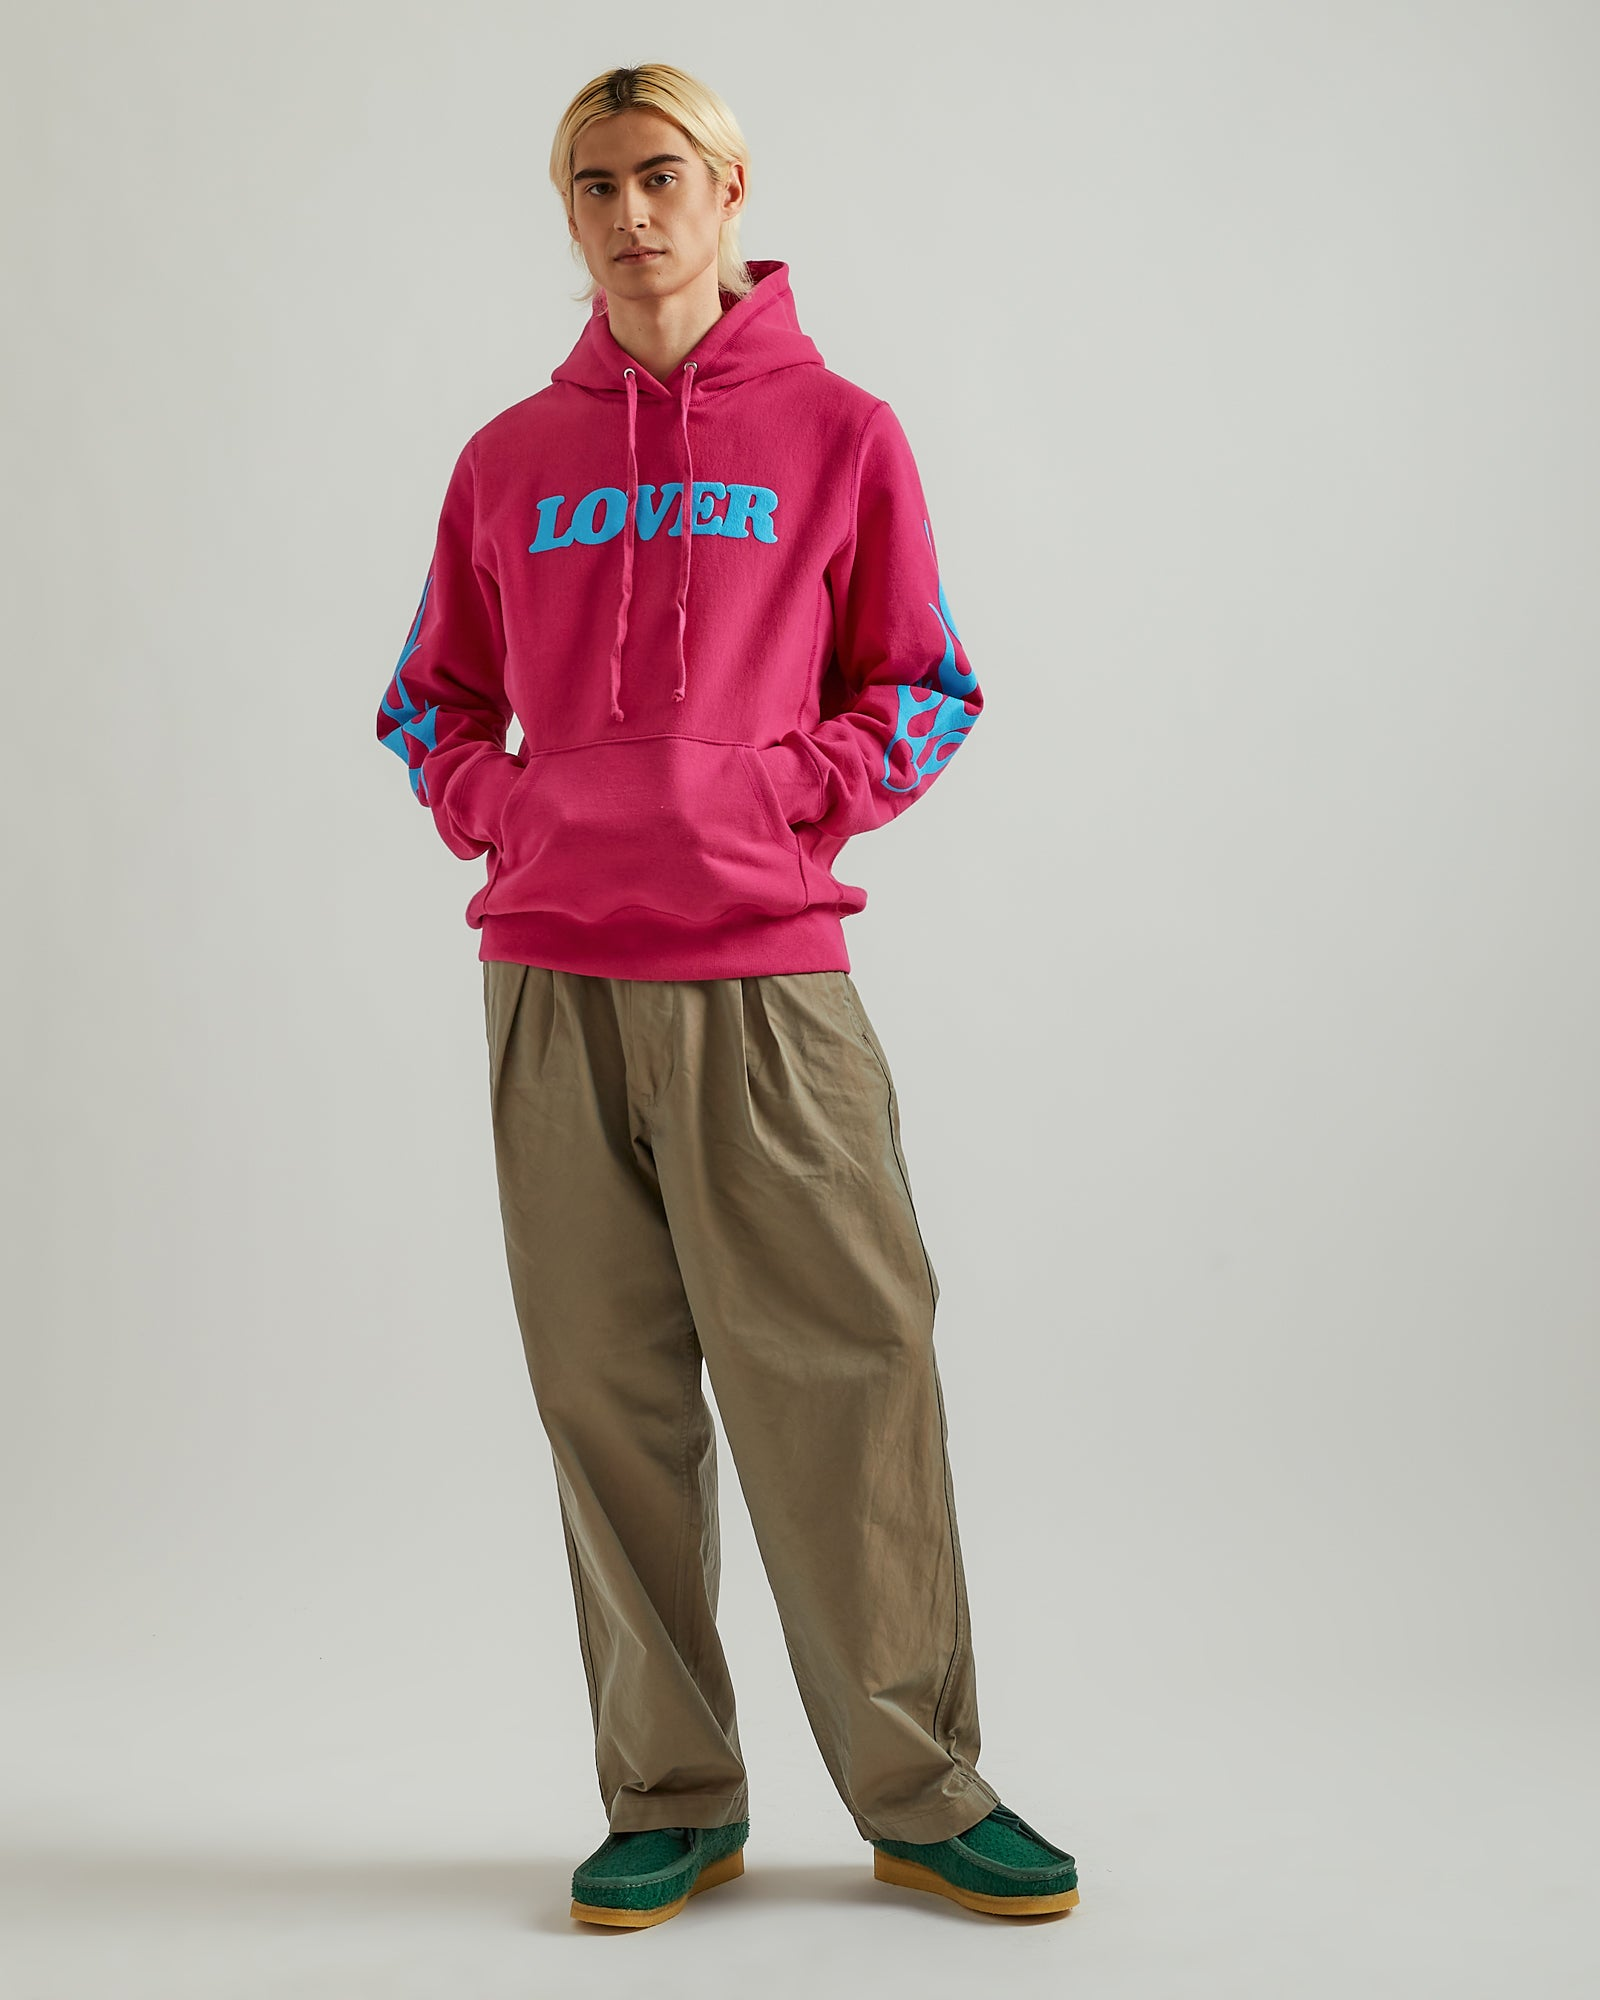 Lover Pullover Hoodie in Fuchsia with Aqua Print